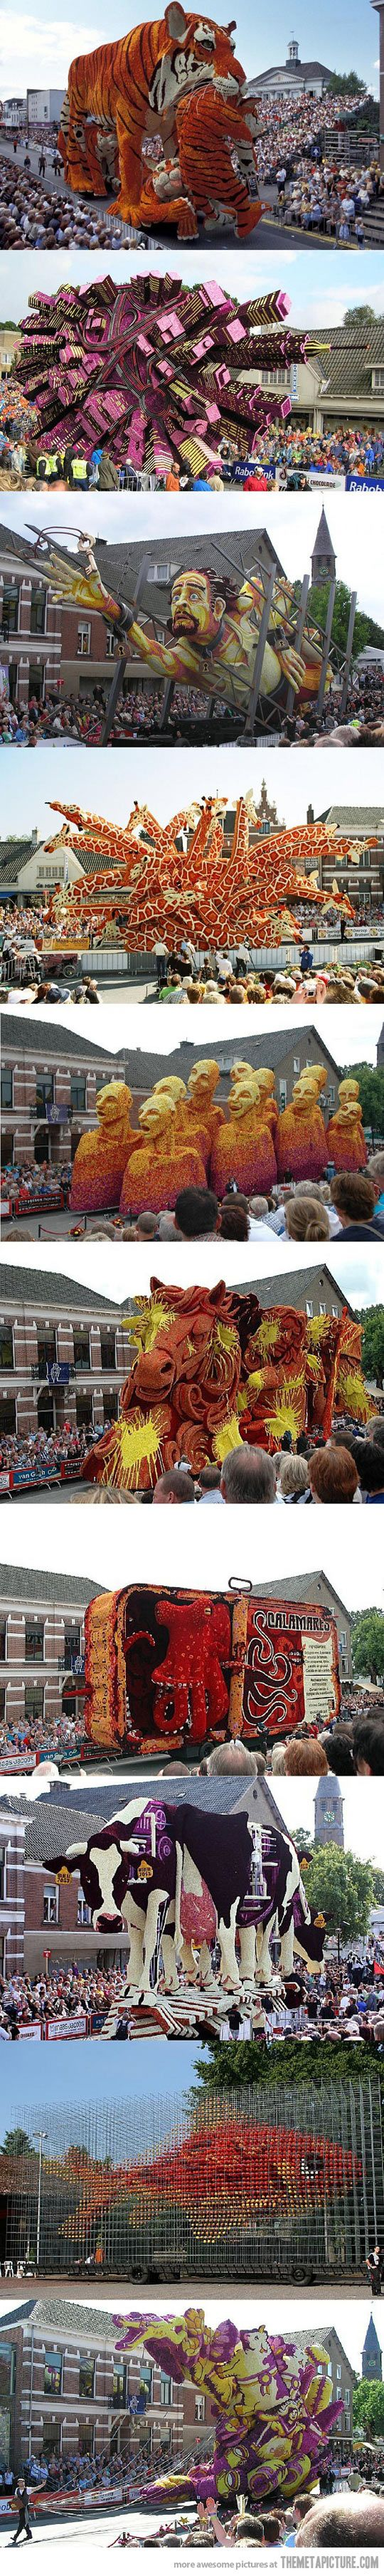 Corso Zundert in the Netherlands: these are all covered with flowers